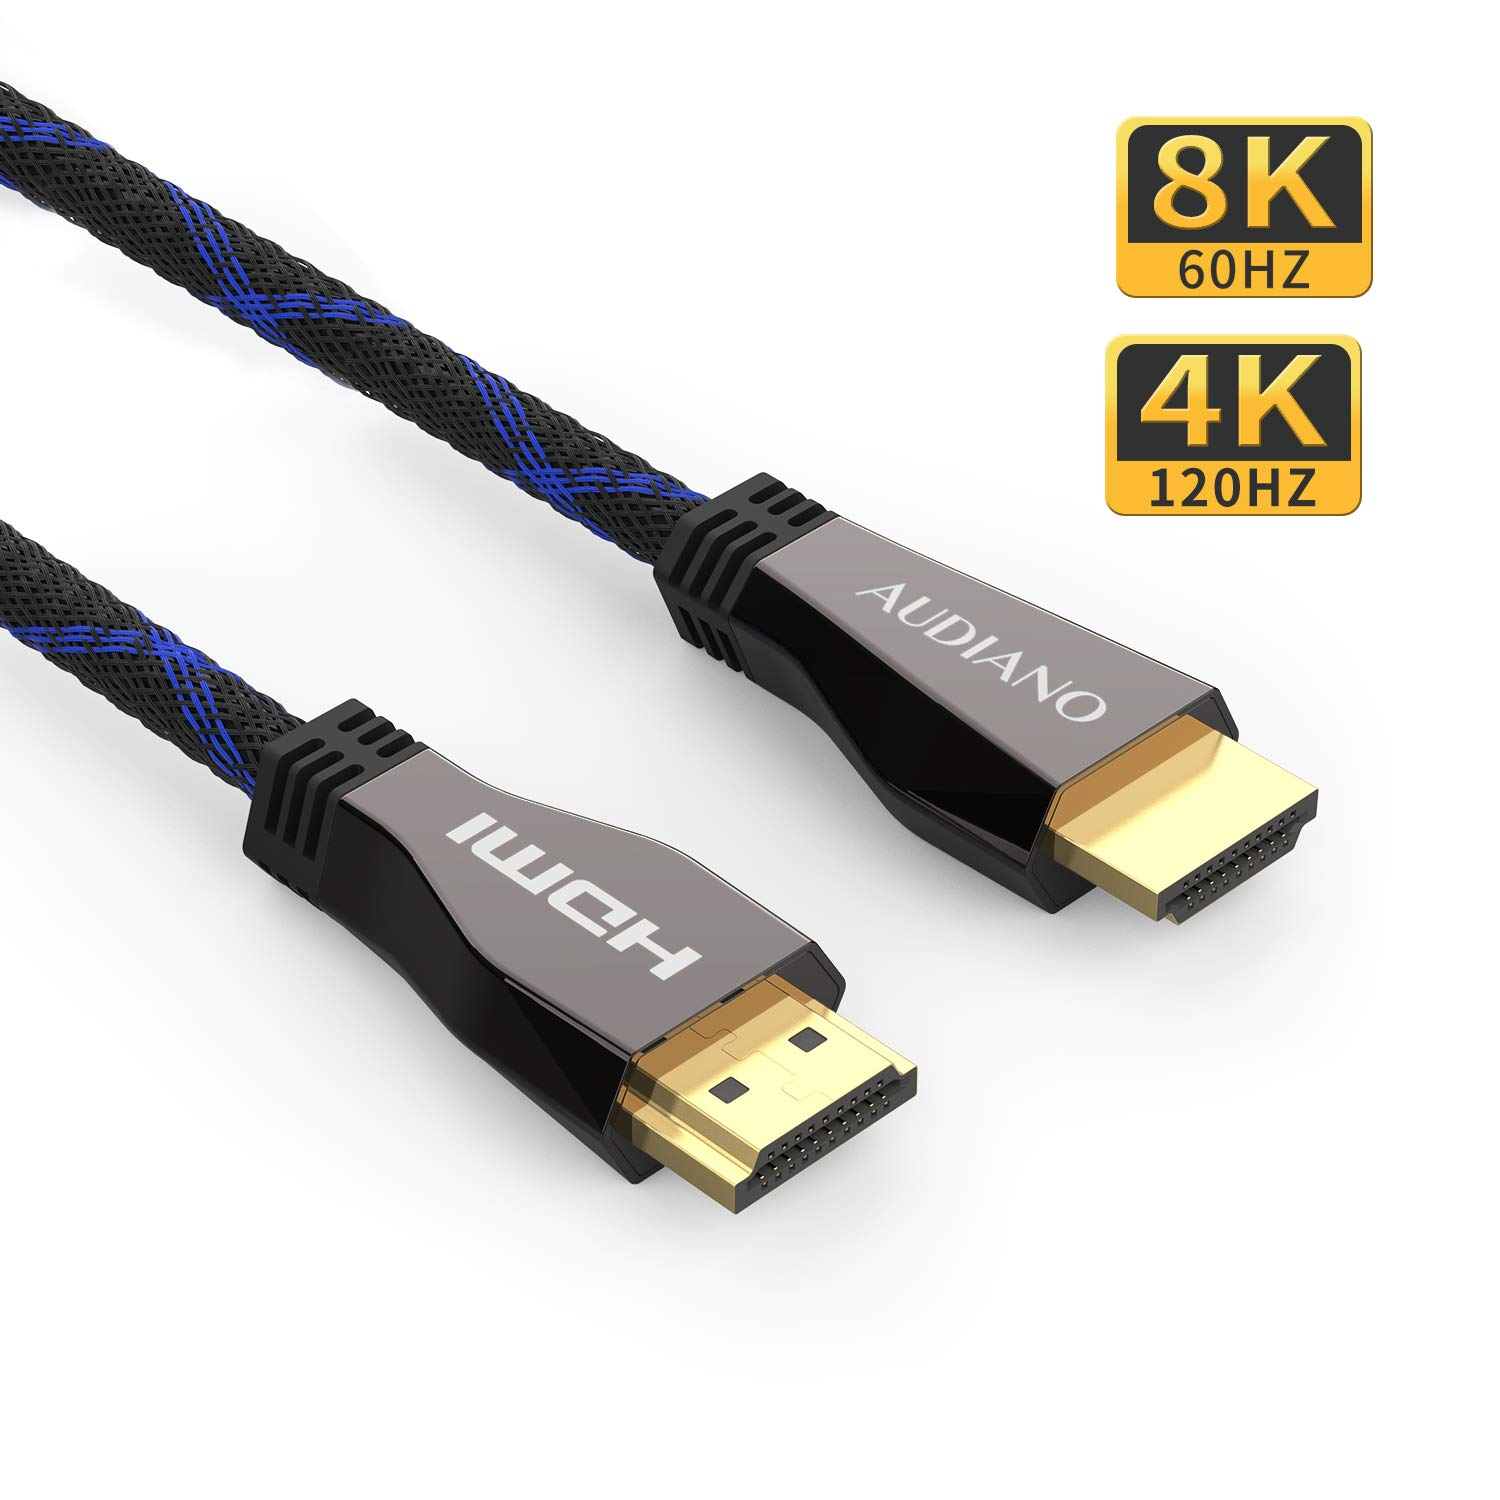 8K HDMI Cable, AUDIANO 8K HDMI 2.1 Cable 100% Real 8K, High Speed 48Gbps 8K@60Hz 7680P Dolby Vision, HDCP 2.2, 4:4:4 HDR, eARC Compatible with Apple TV, Samsung QLED TV (6.6ft)